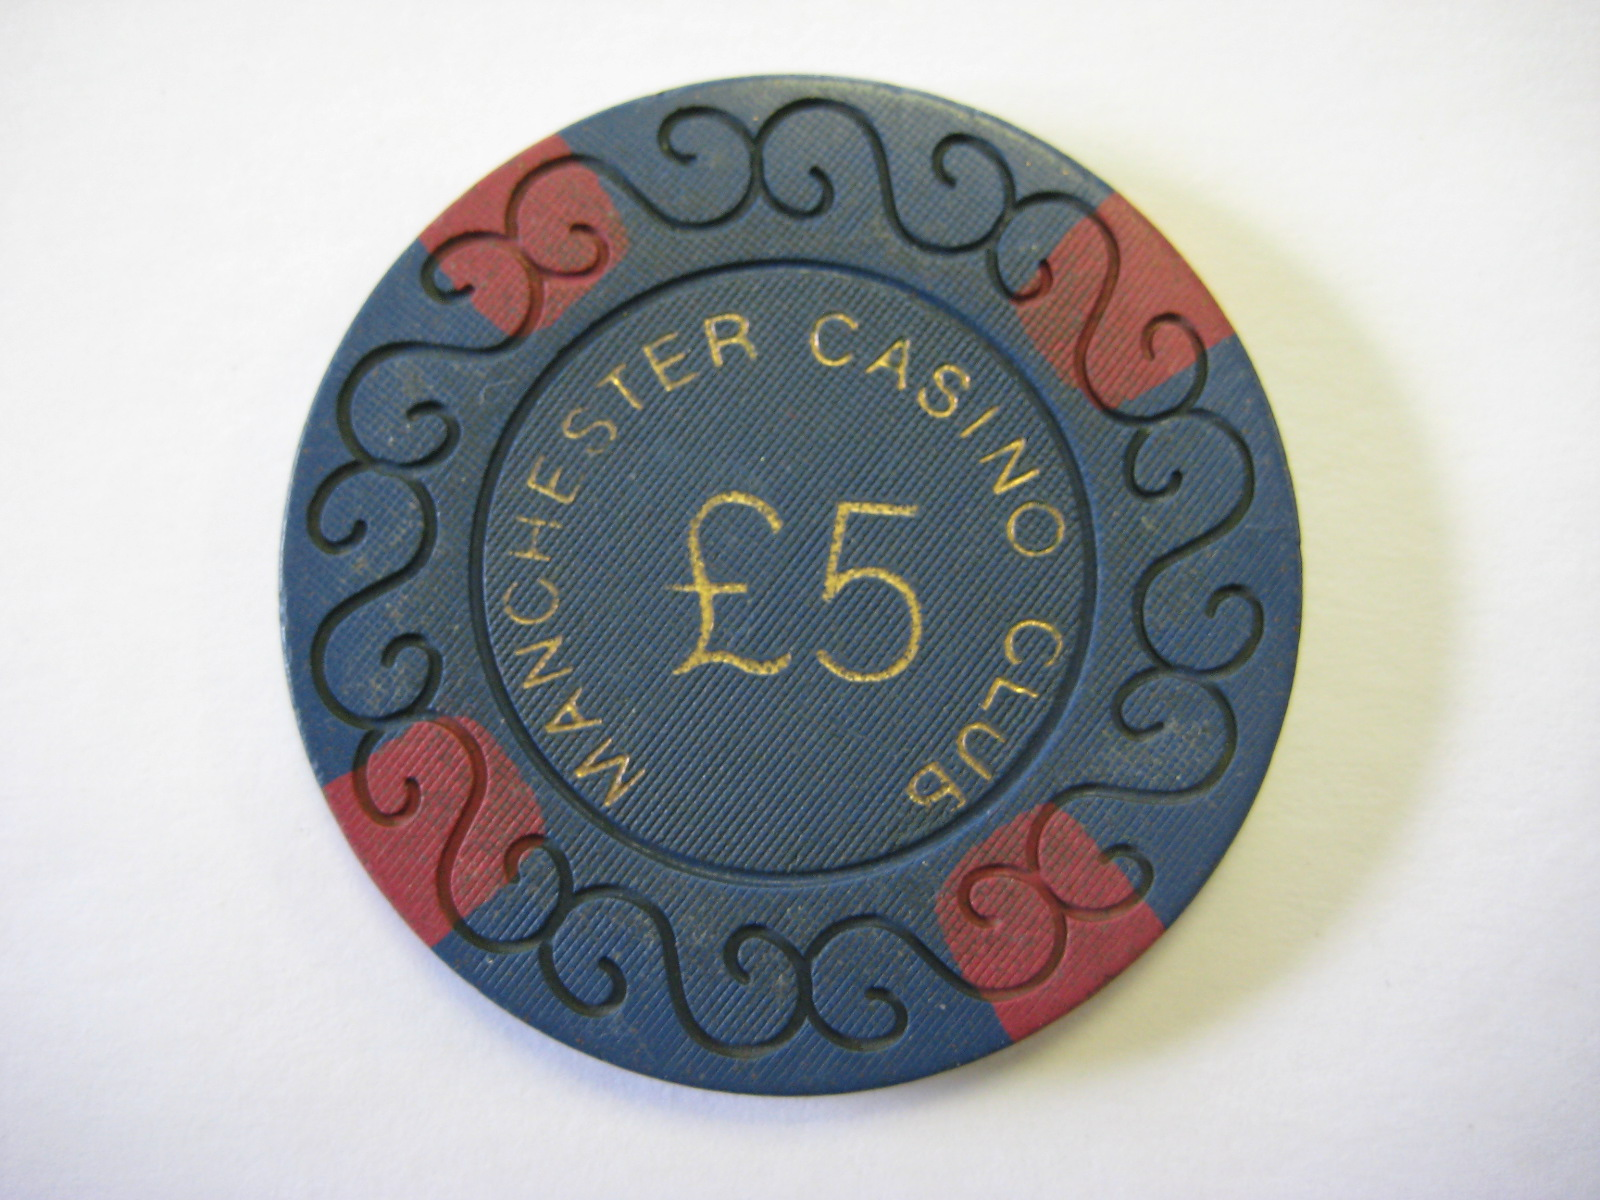 Manchester Playboy Casino Club 5 Pound Chip